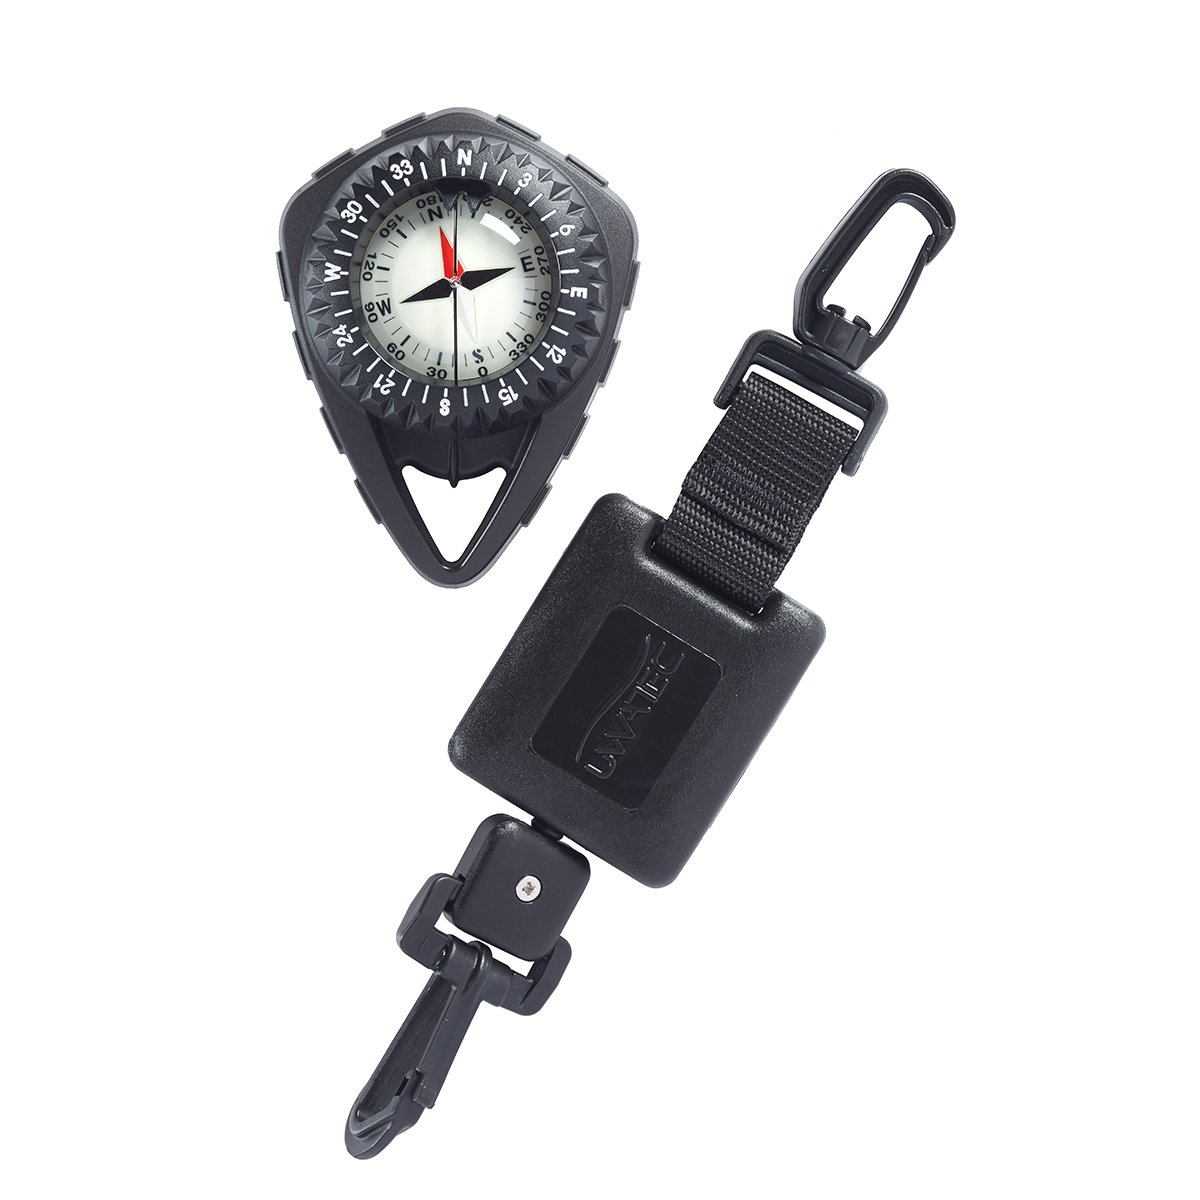 ScubaPro Fs-1.5 N Compass With Retractor